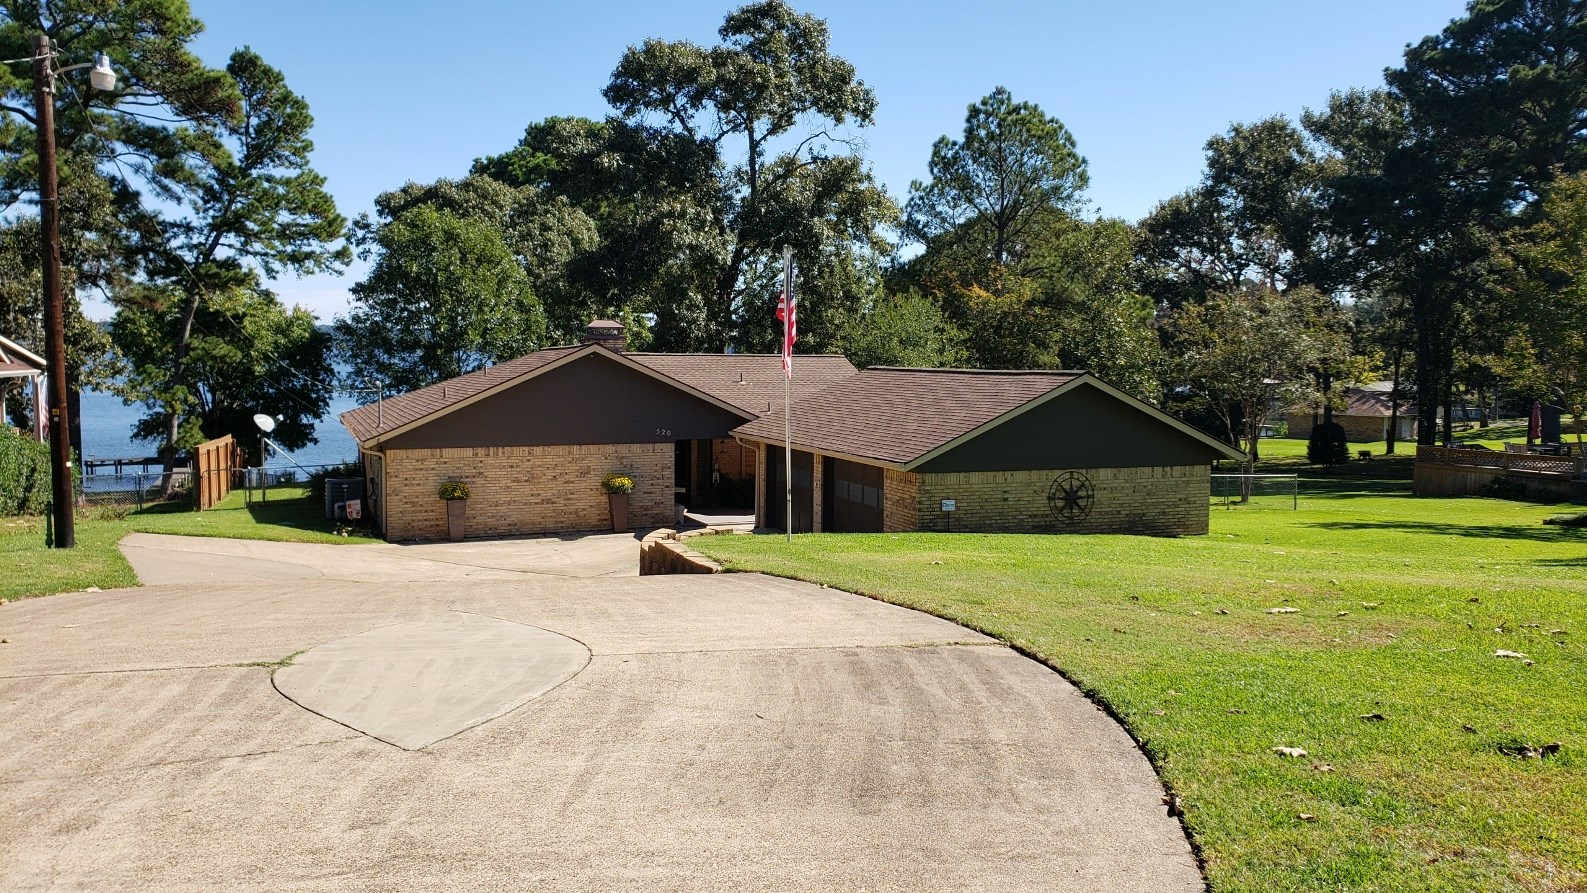 LAKEFRONT HOME FOR SALE LAKE PALESTINE | WATERFRONT PROPERTY